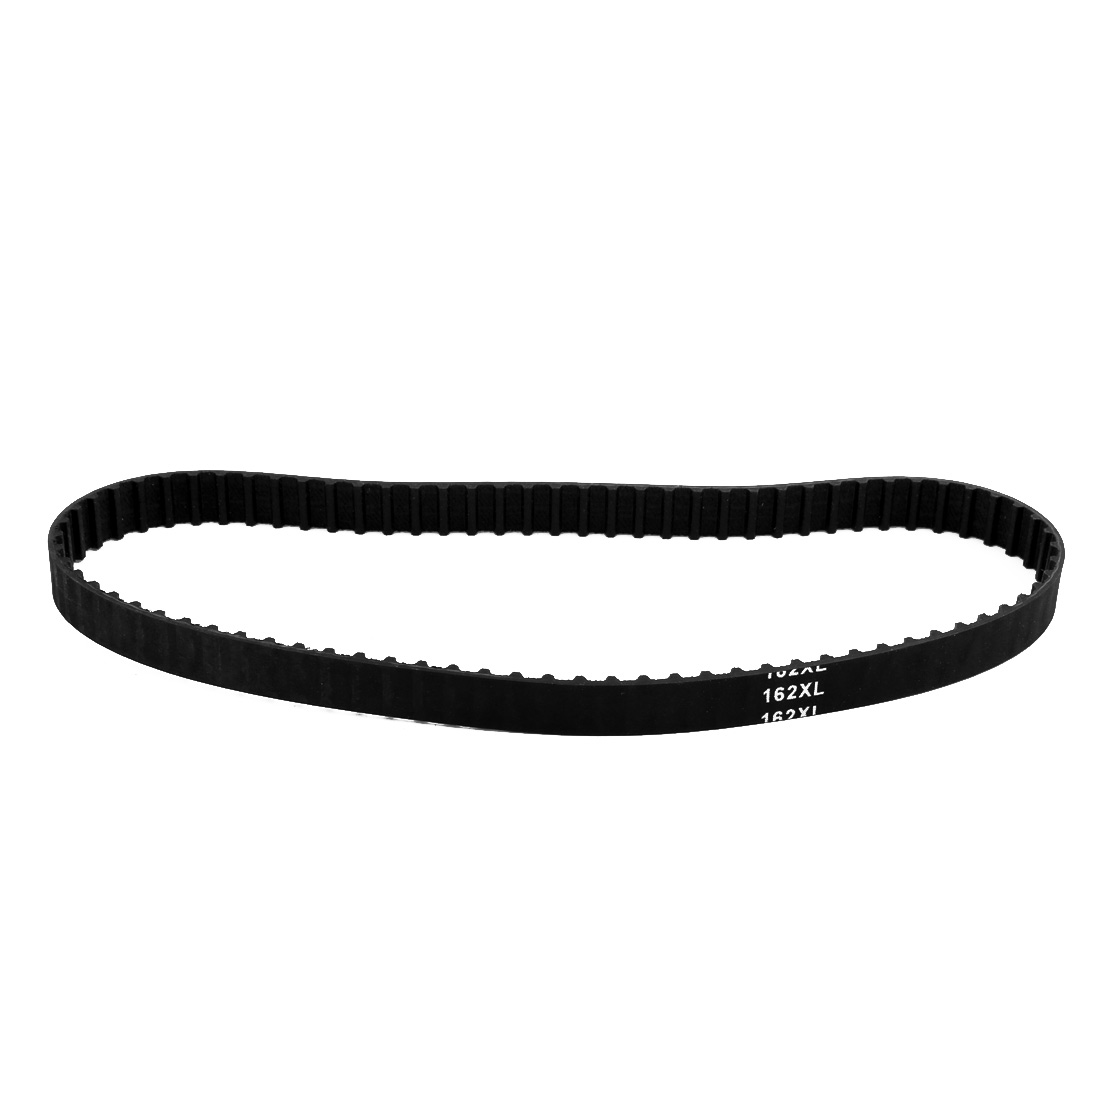 162XL 81 Teeth 10mm Width 5.08mm Pitch Stepper Motor Rubber Timing Belt Black